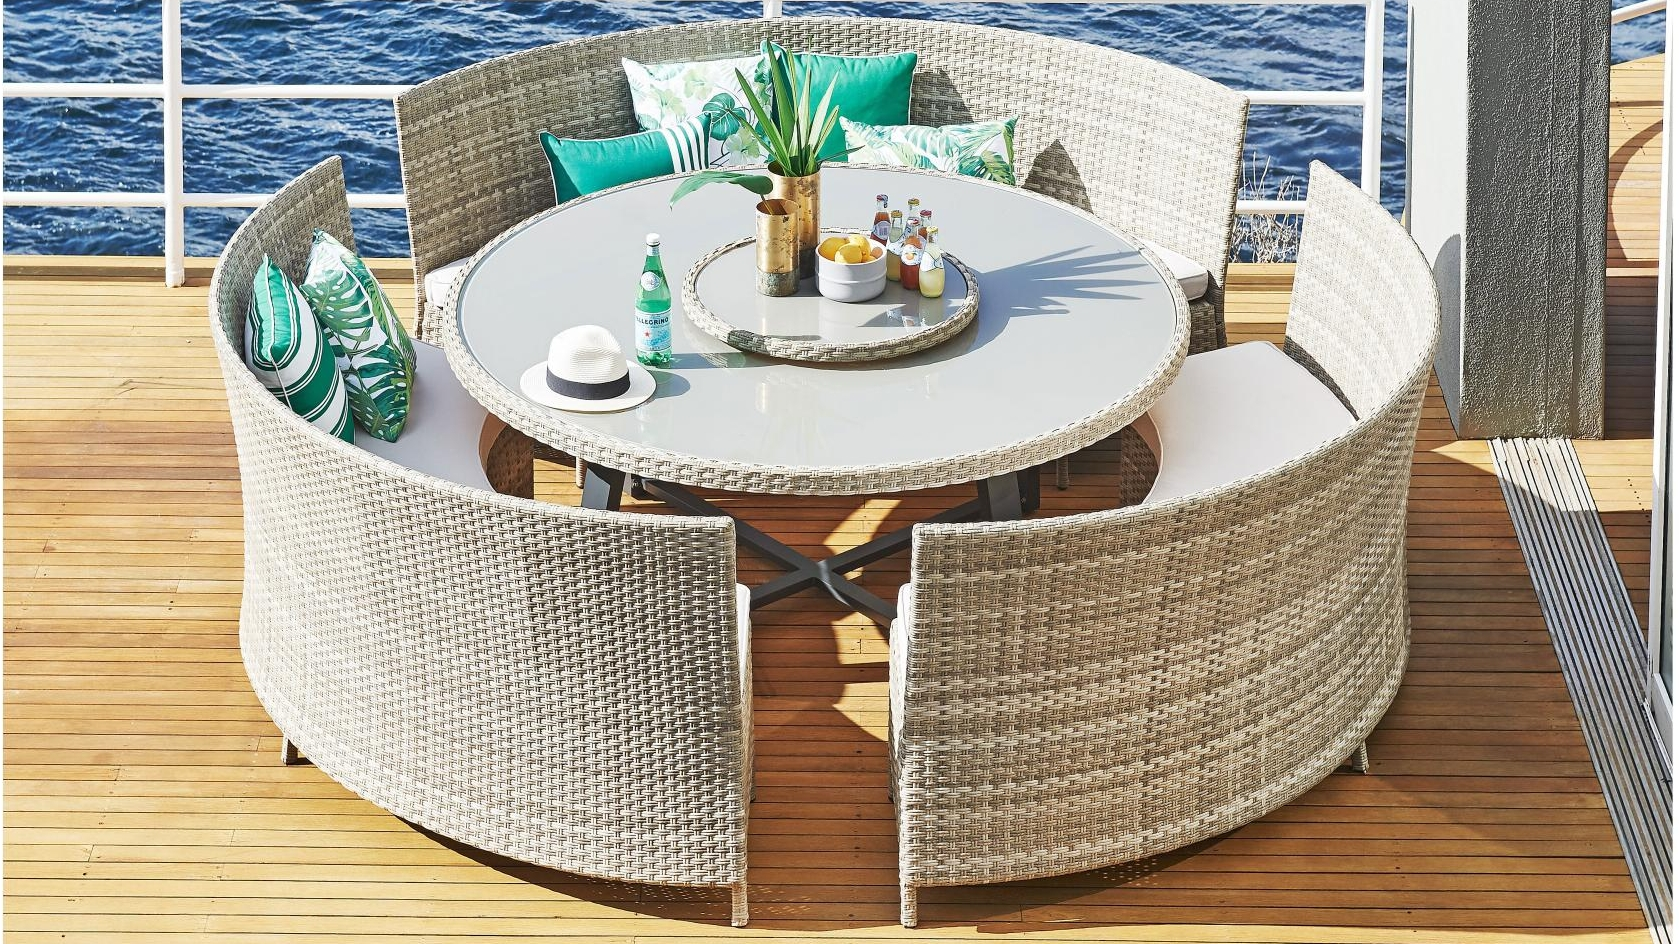 Onland Outdoor Furniture Buy Hudson 5 Piece Outdoor Dining Setting Harvey Norman Au